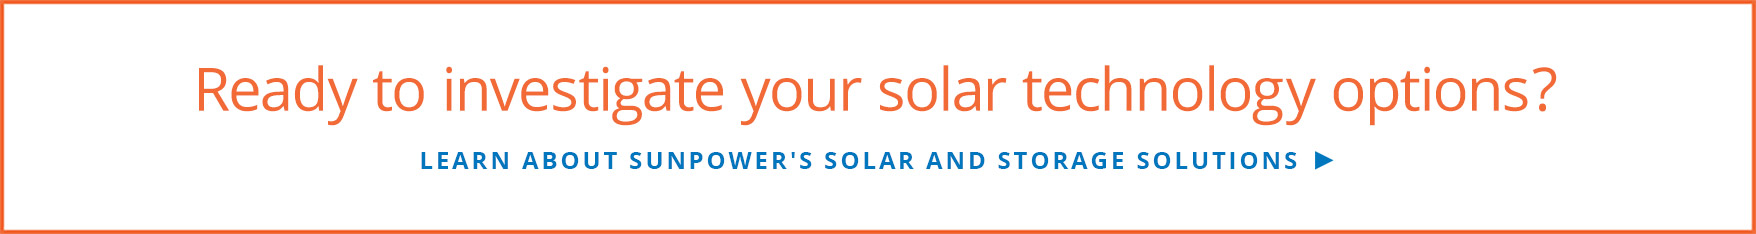 Learn about SunPower's solar and storage solutions